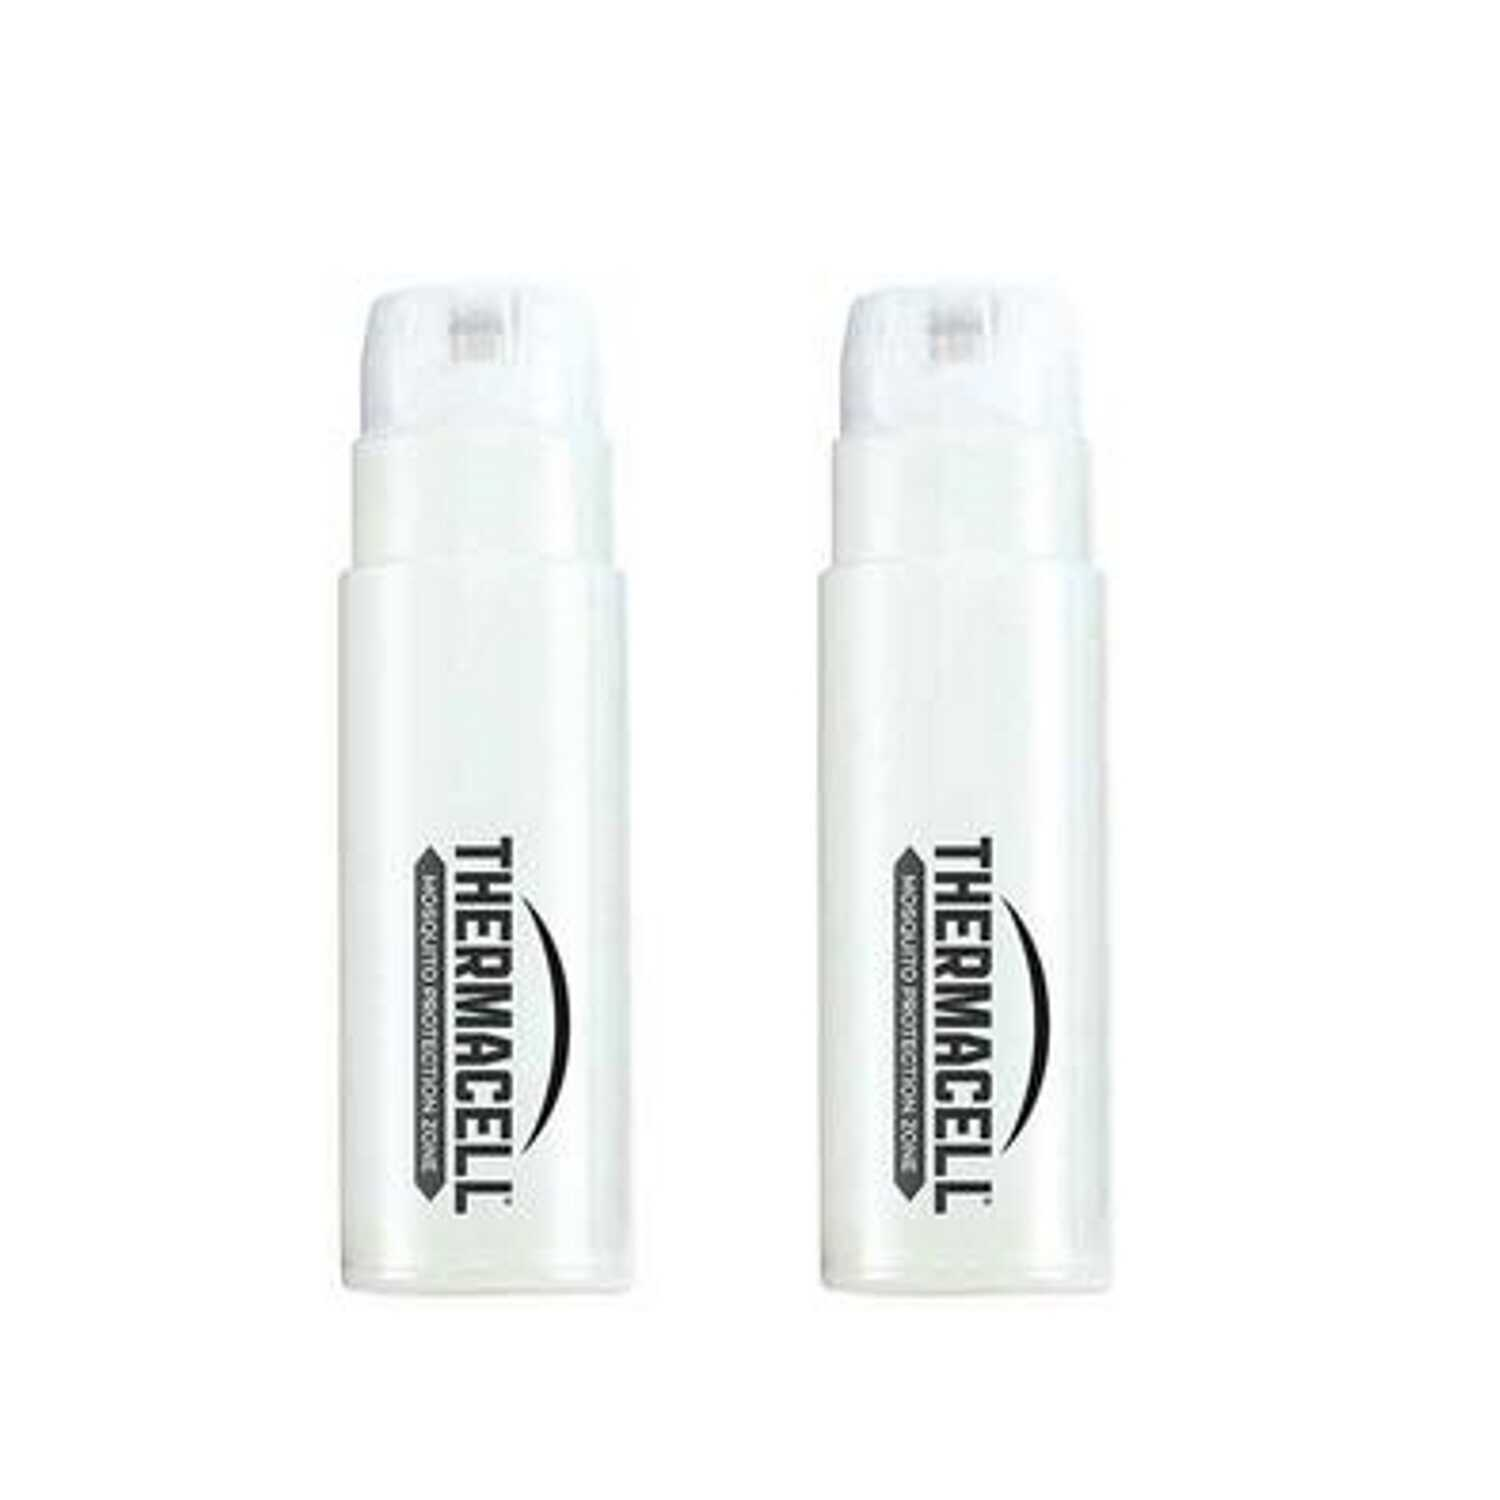 Thermacell  Insect Repellent Refill Cartridge  Liquid  For Mosquitoes 0.2 oz.